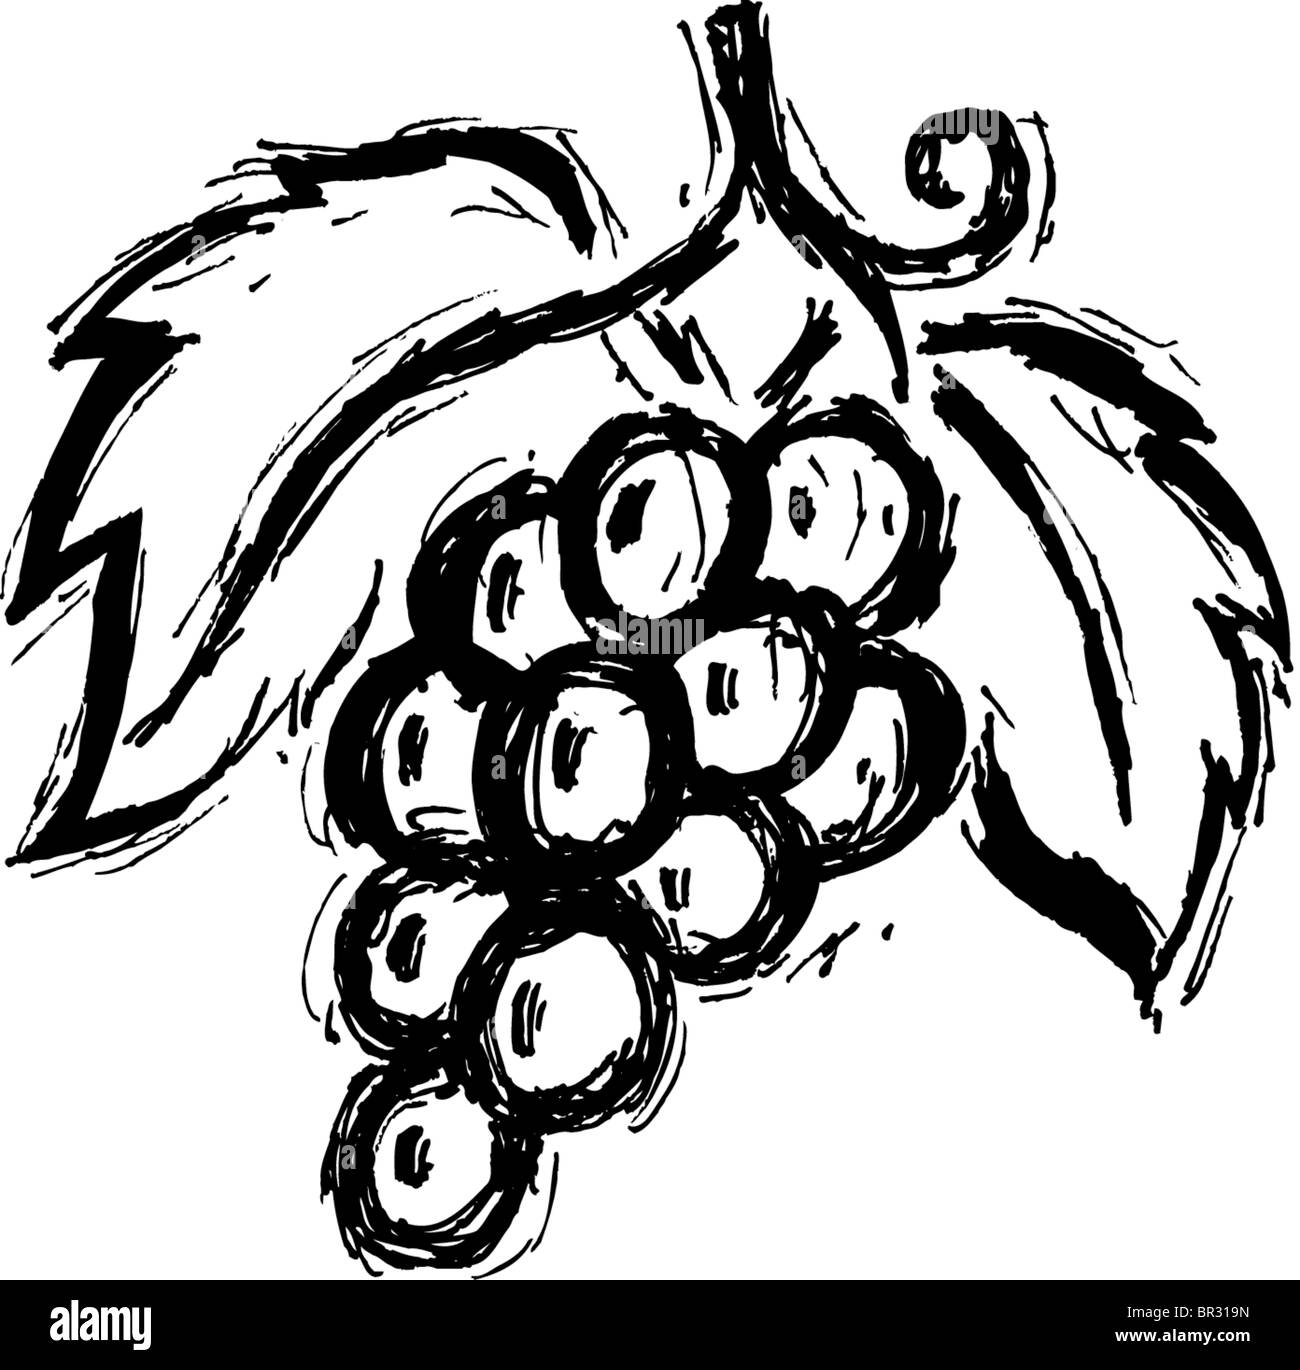 grapes clipart black and white. bunches of grapes cartoon illustration; a black and white drawing bunch - stock photo clipart